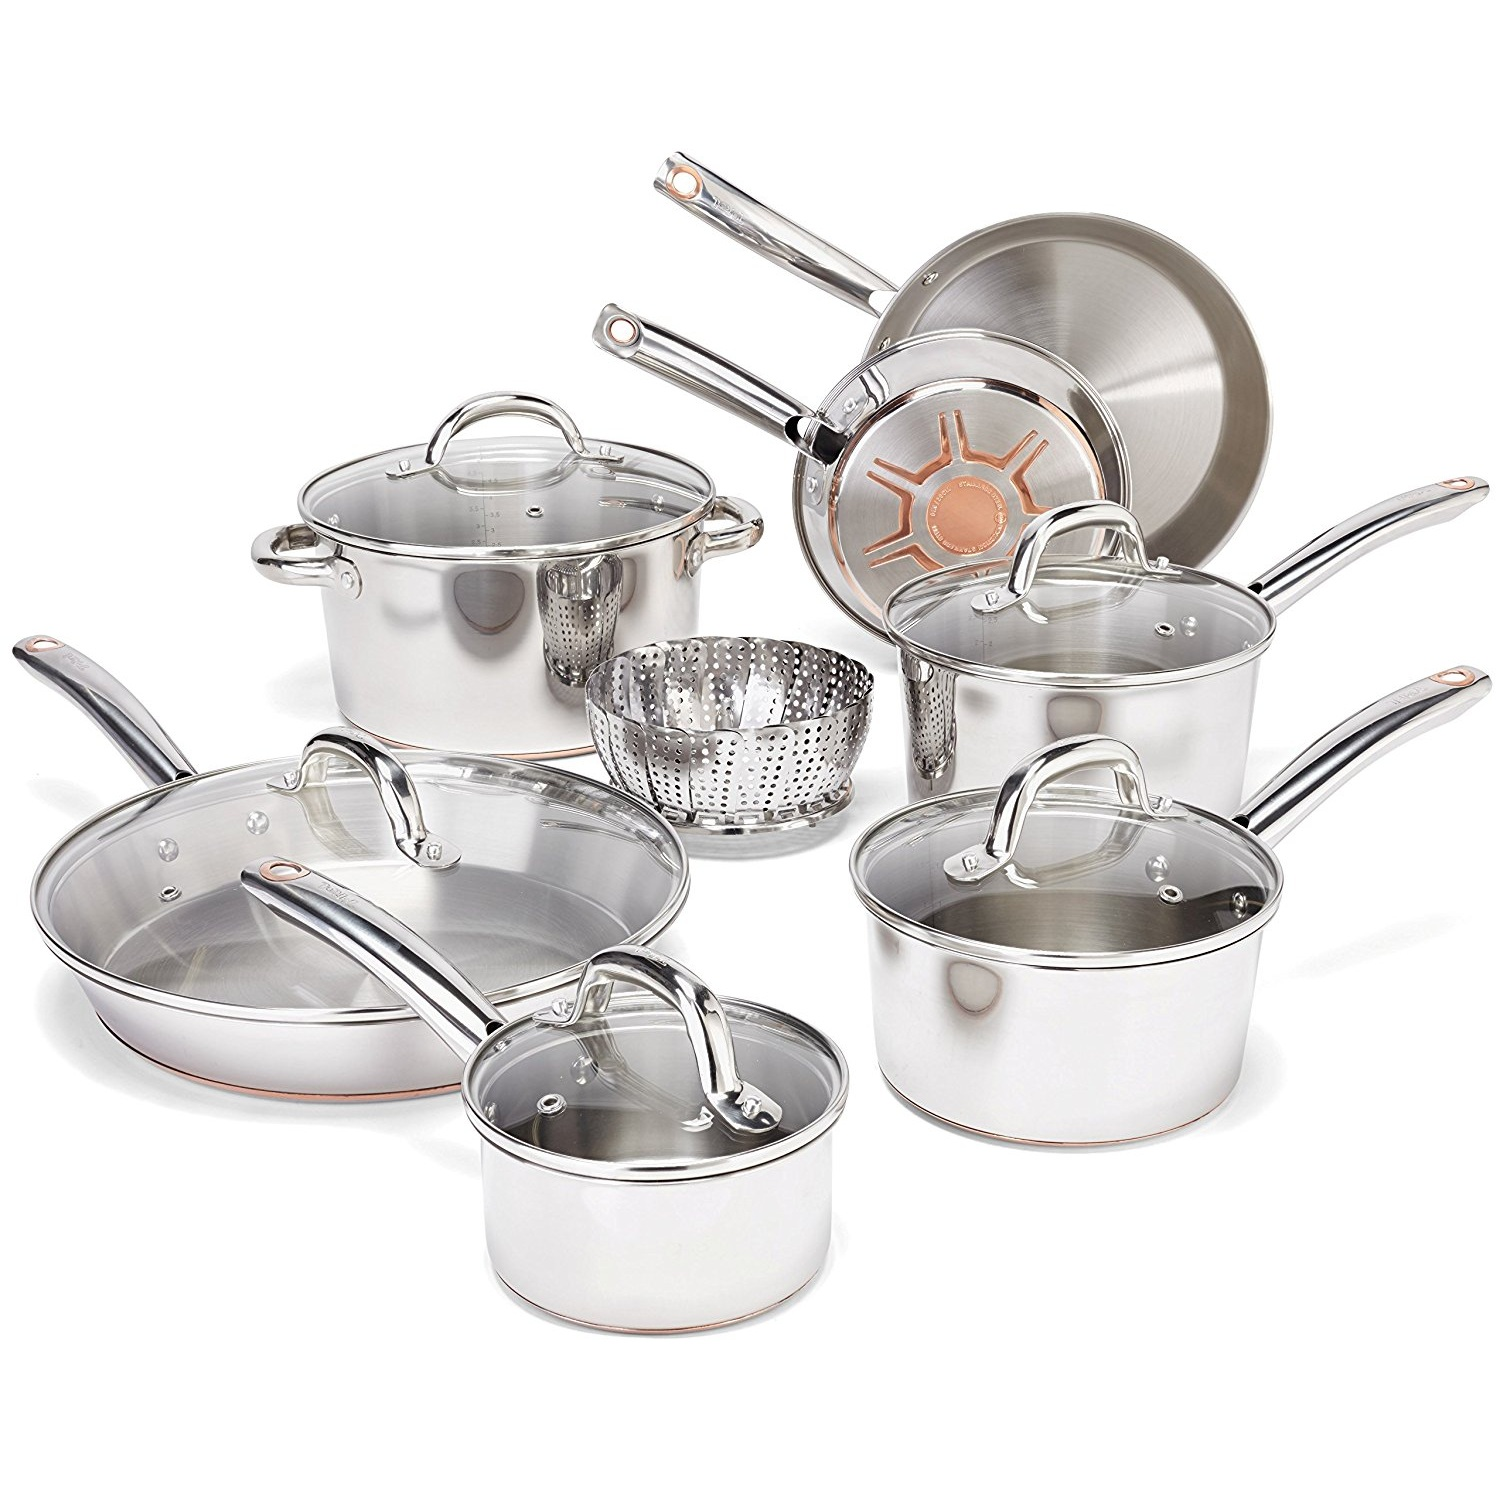 T-Fal C836SD Stainless Steel Cookware Set